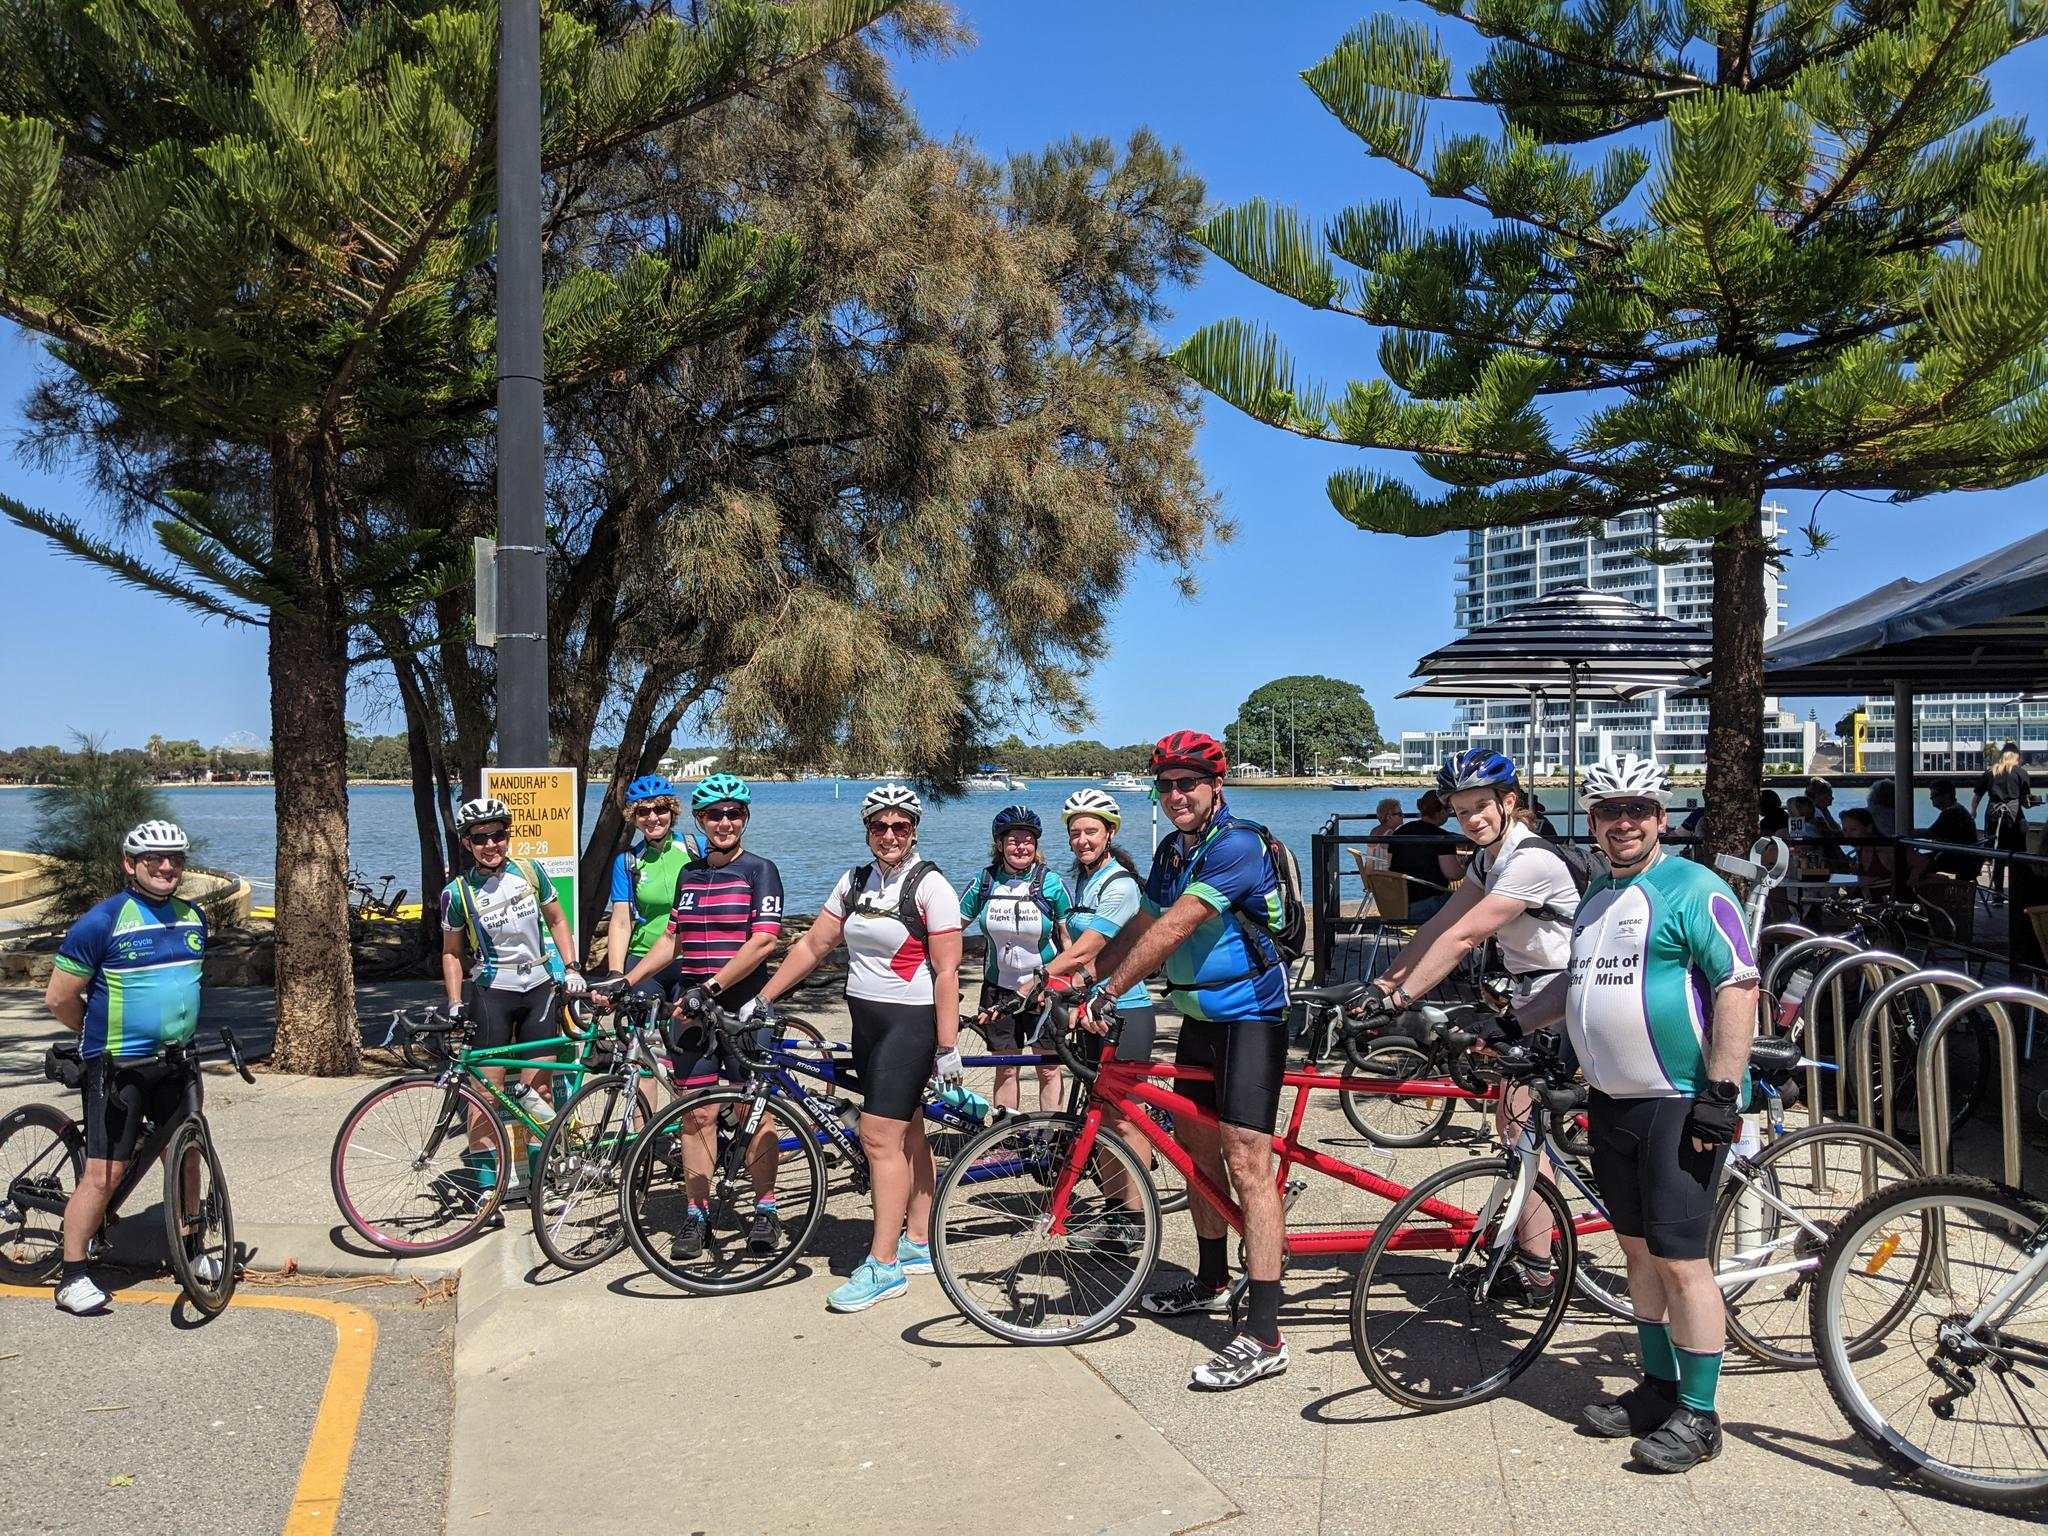 4 Tandems and 2 single bikes on the Mandurah Foreshore